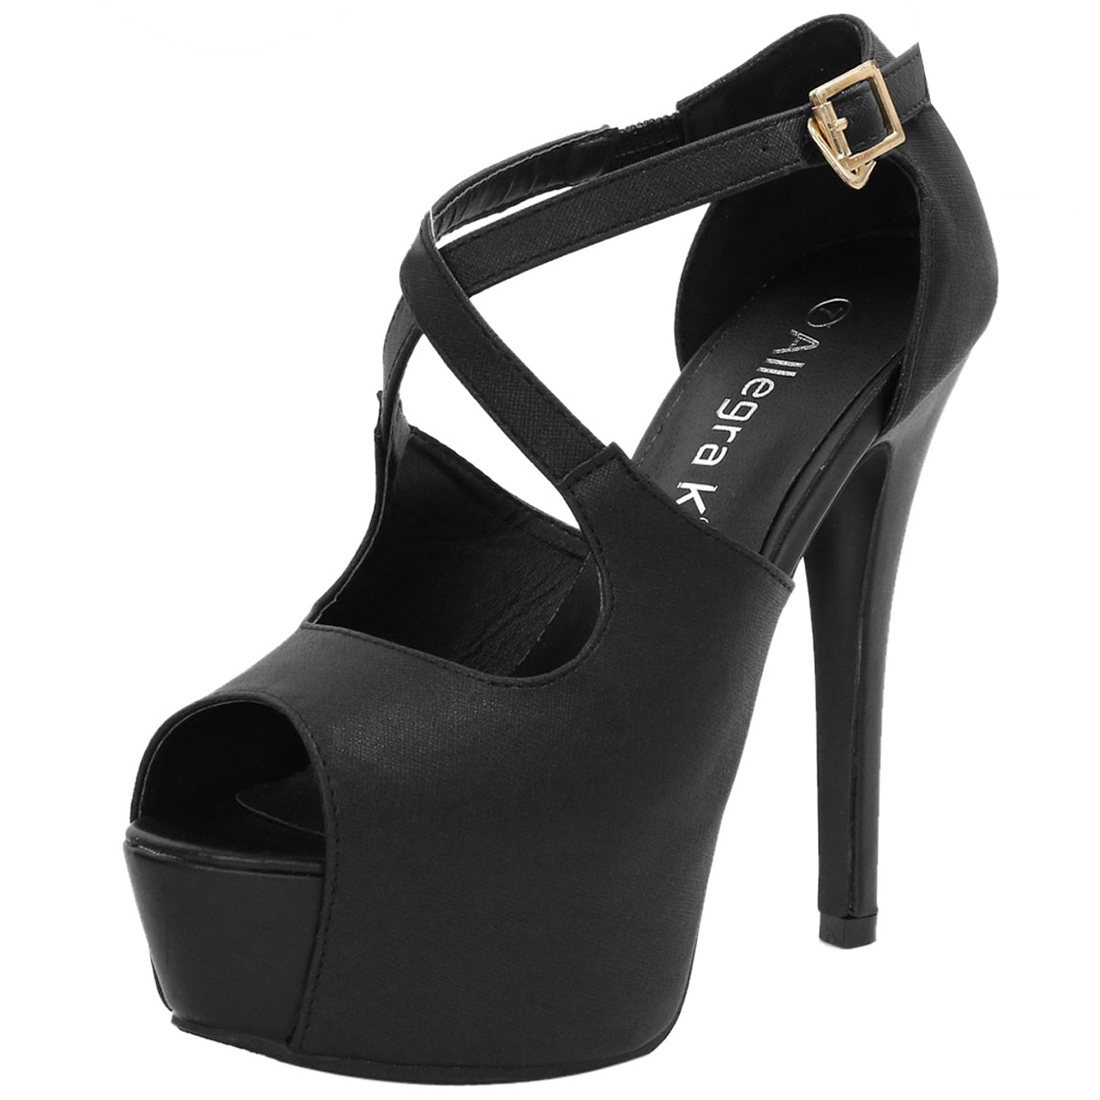 Woman Peep Toe High Heel Crisscross Straps Platform Sandals Black US 7